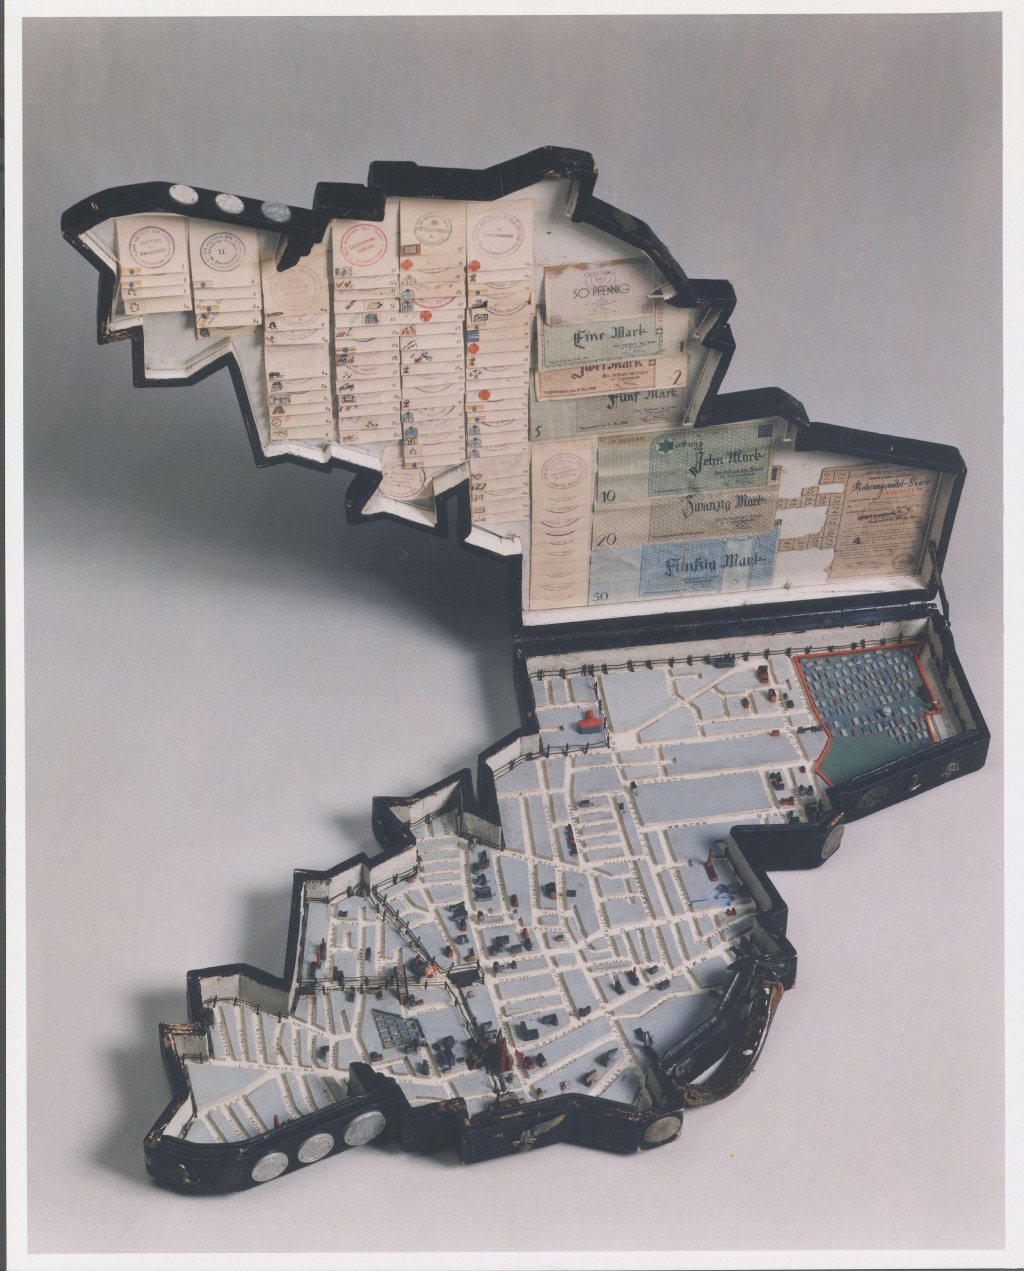 Model of the Lodz ghetto [LCID: 2004ed9i]